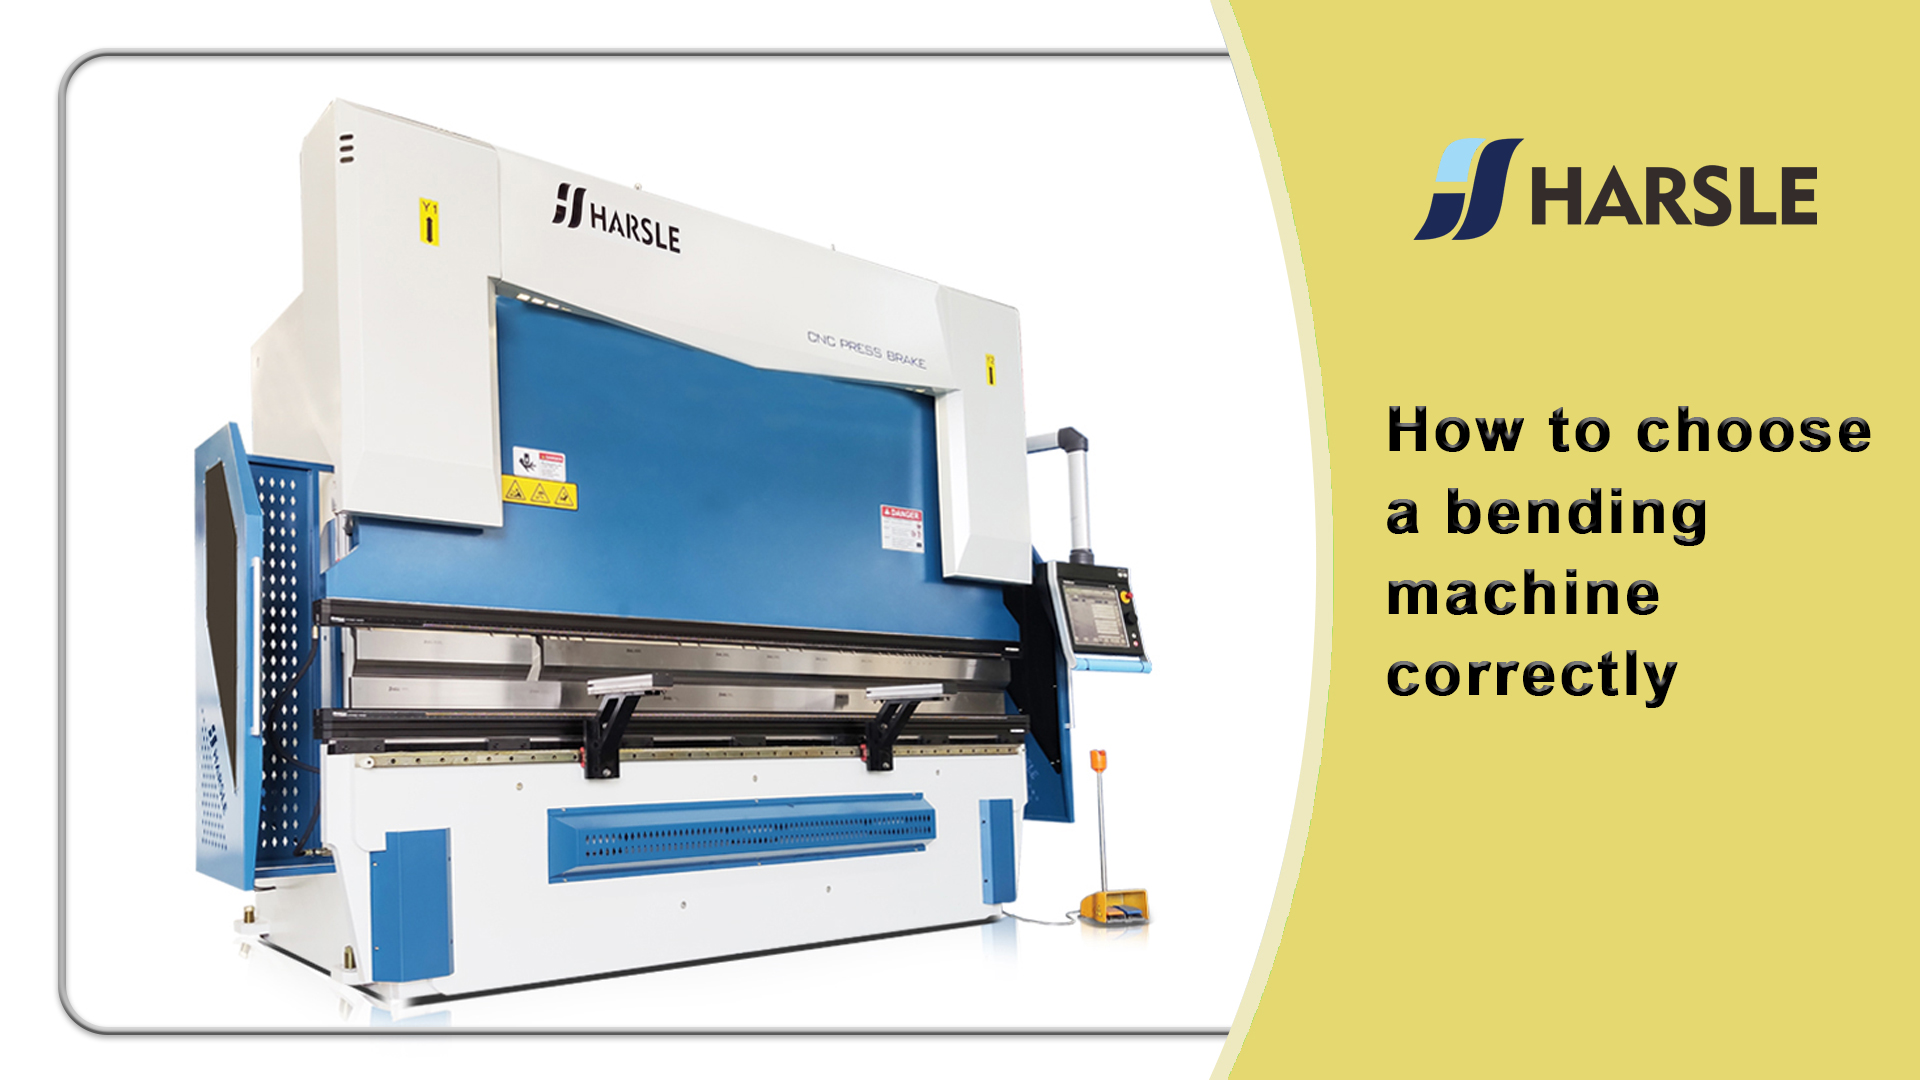 How to choose a bending machine correctly